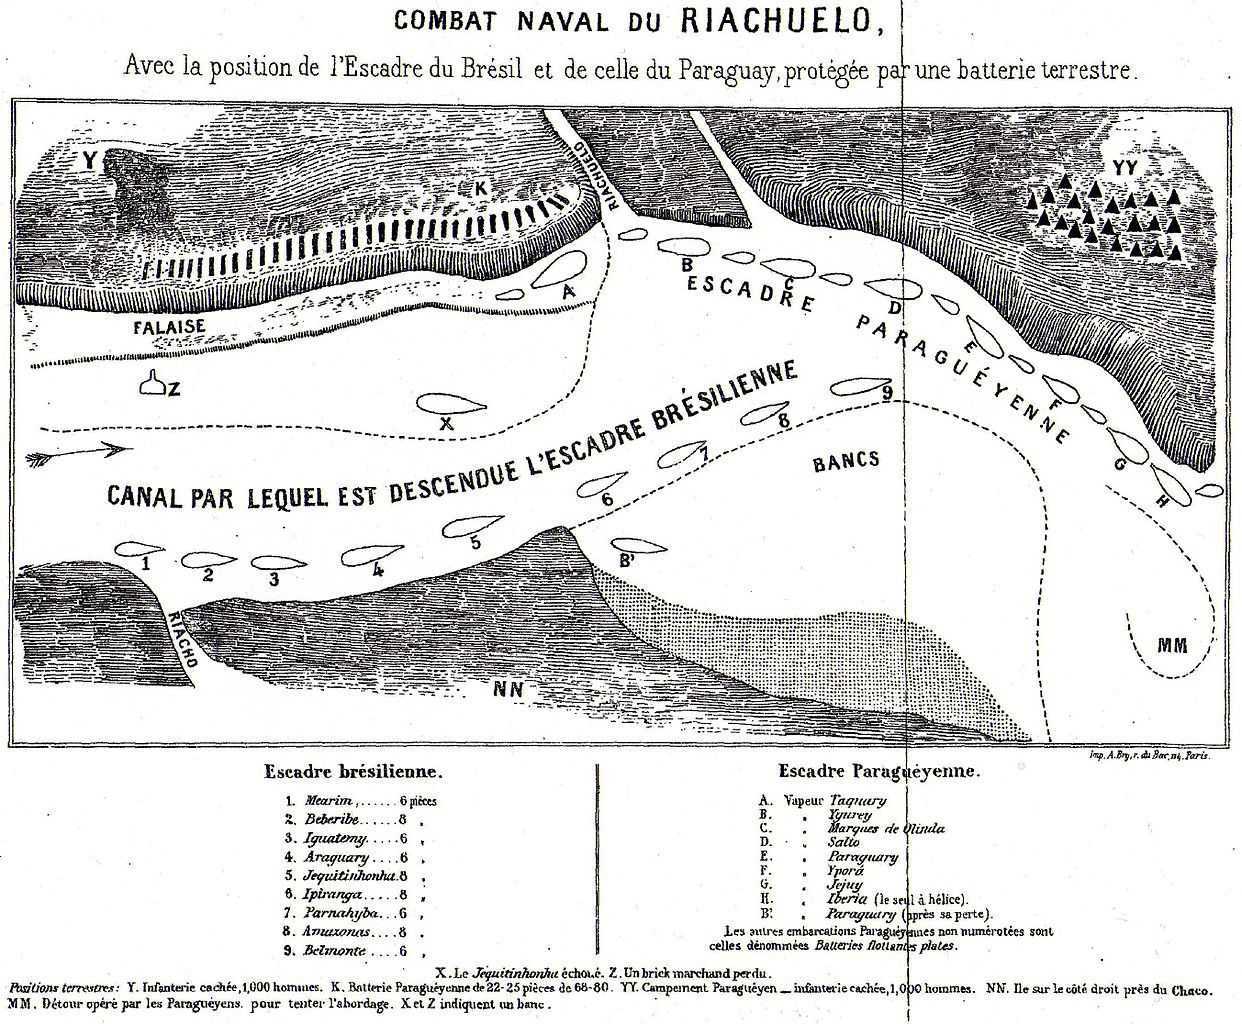 Battle of Riachuelo: Position of Braziian and Paraguayan Squadrons